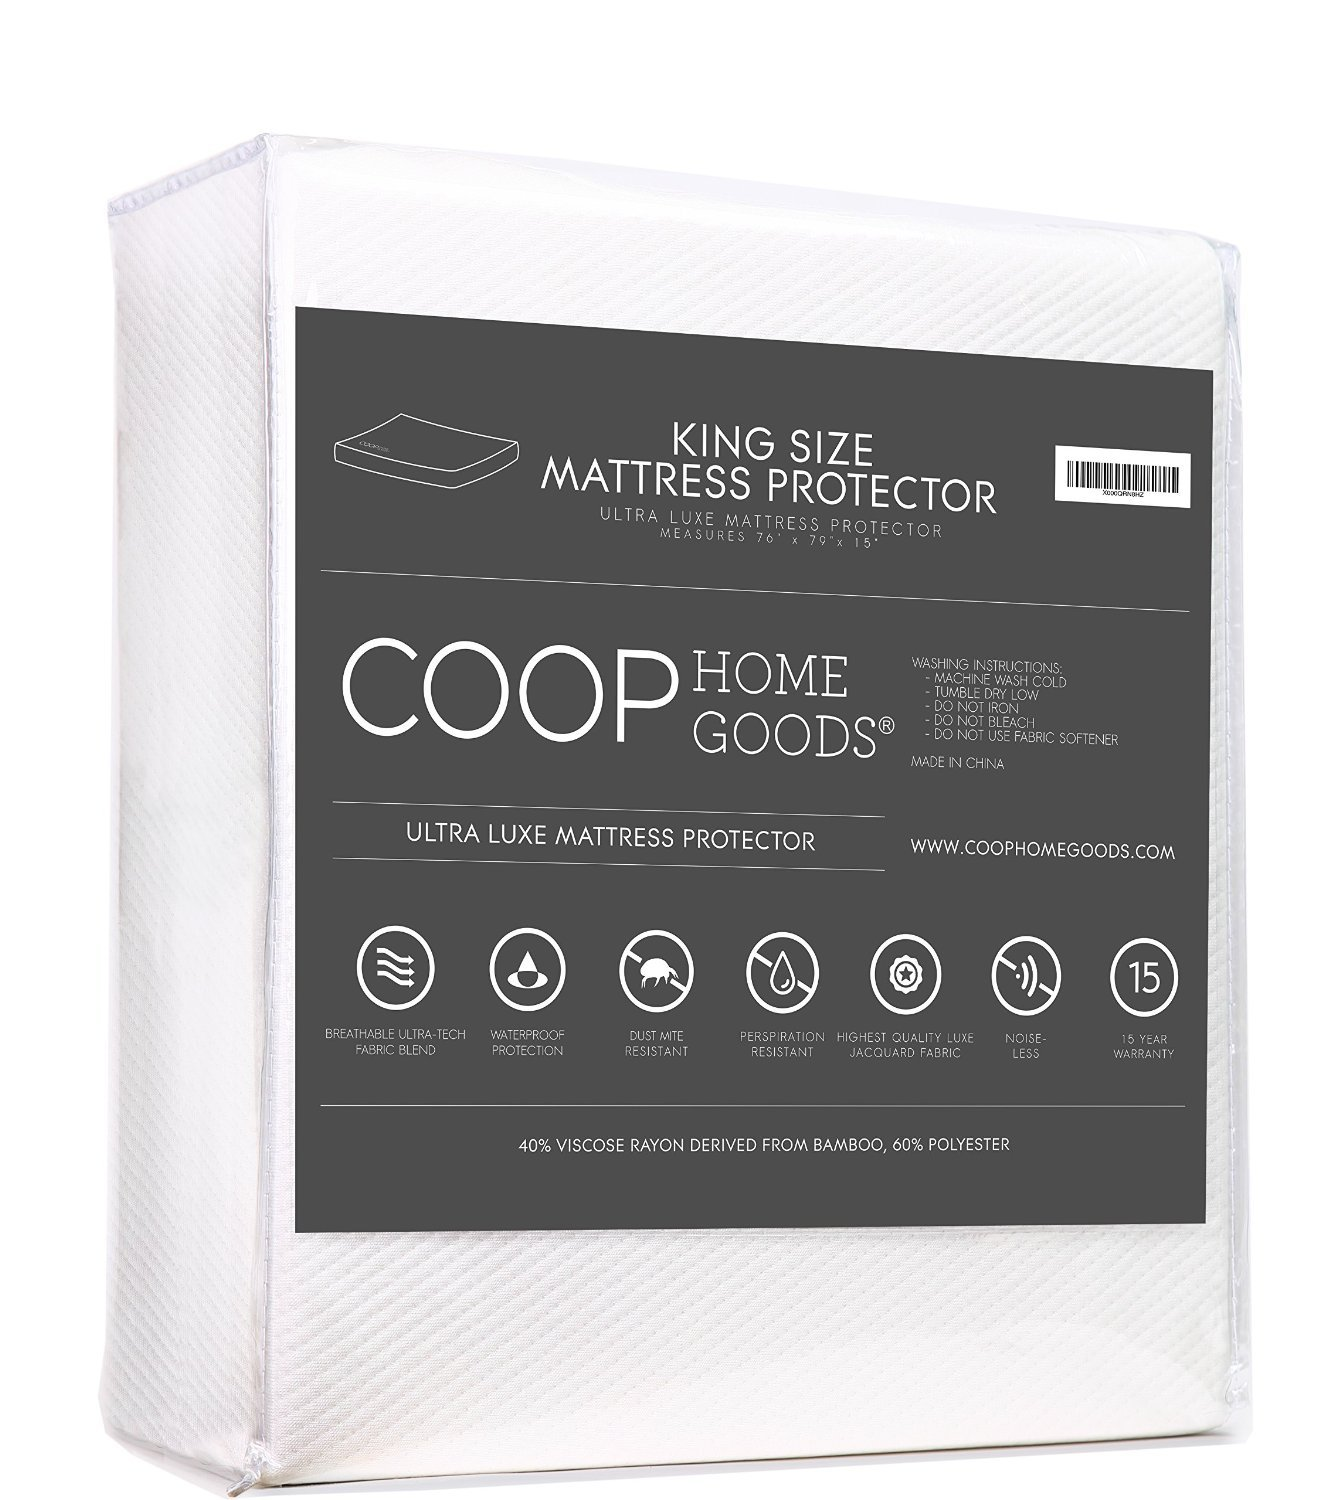 Lulltra Waterproof Mattress Pad Protector Cover by Coop Home Goods - Cooling Waterproof Hypoallergenic Topper - King - White-15 year warranty SYNCHKG059140